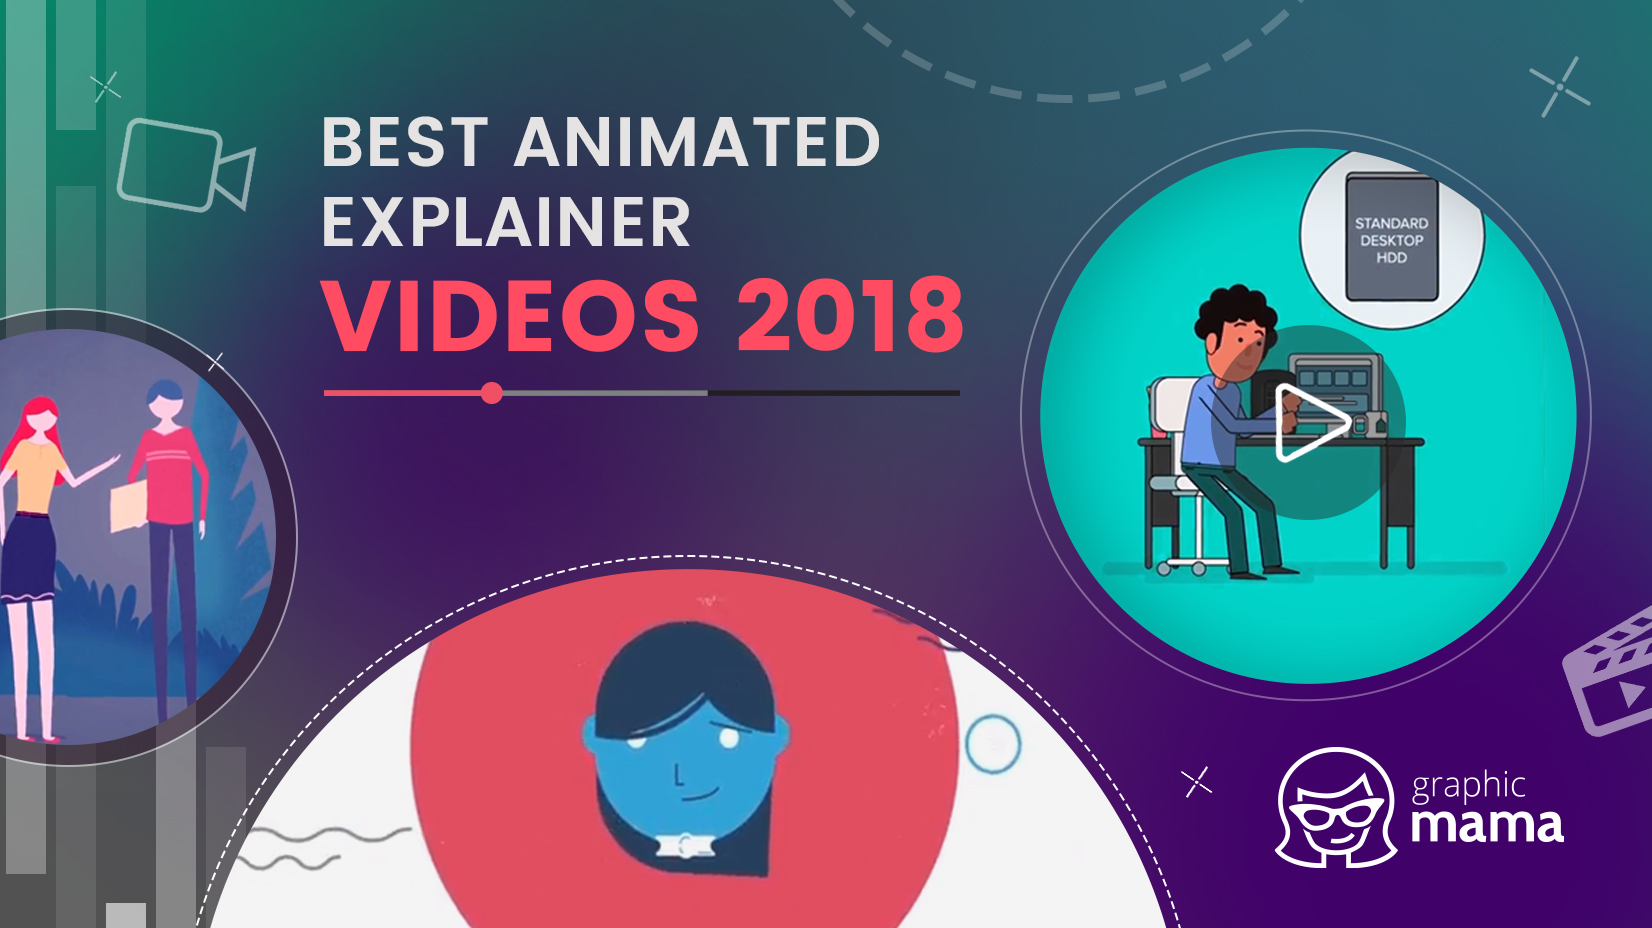 30 of The Best Animated Explainer Videos in 2018